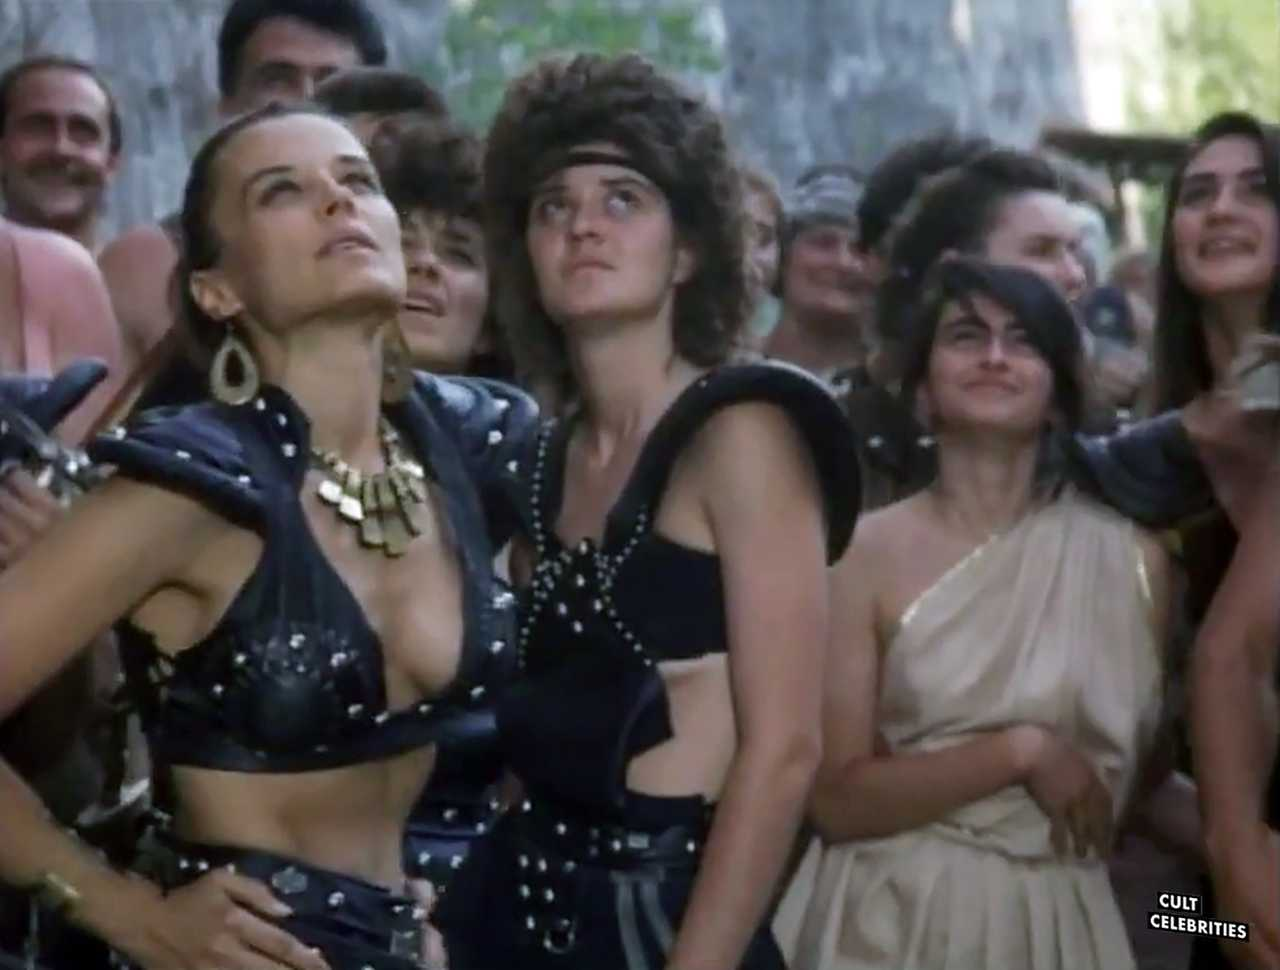 Anya Pencheya in Deathstalker IV: Match of Titans (1991)